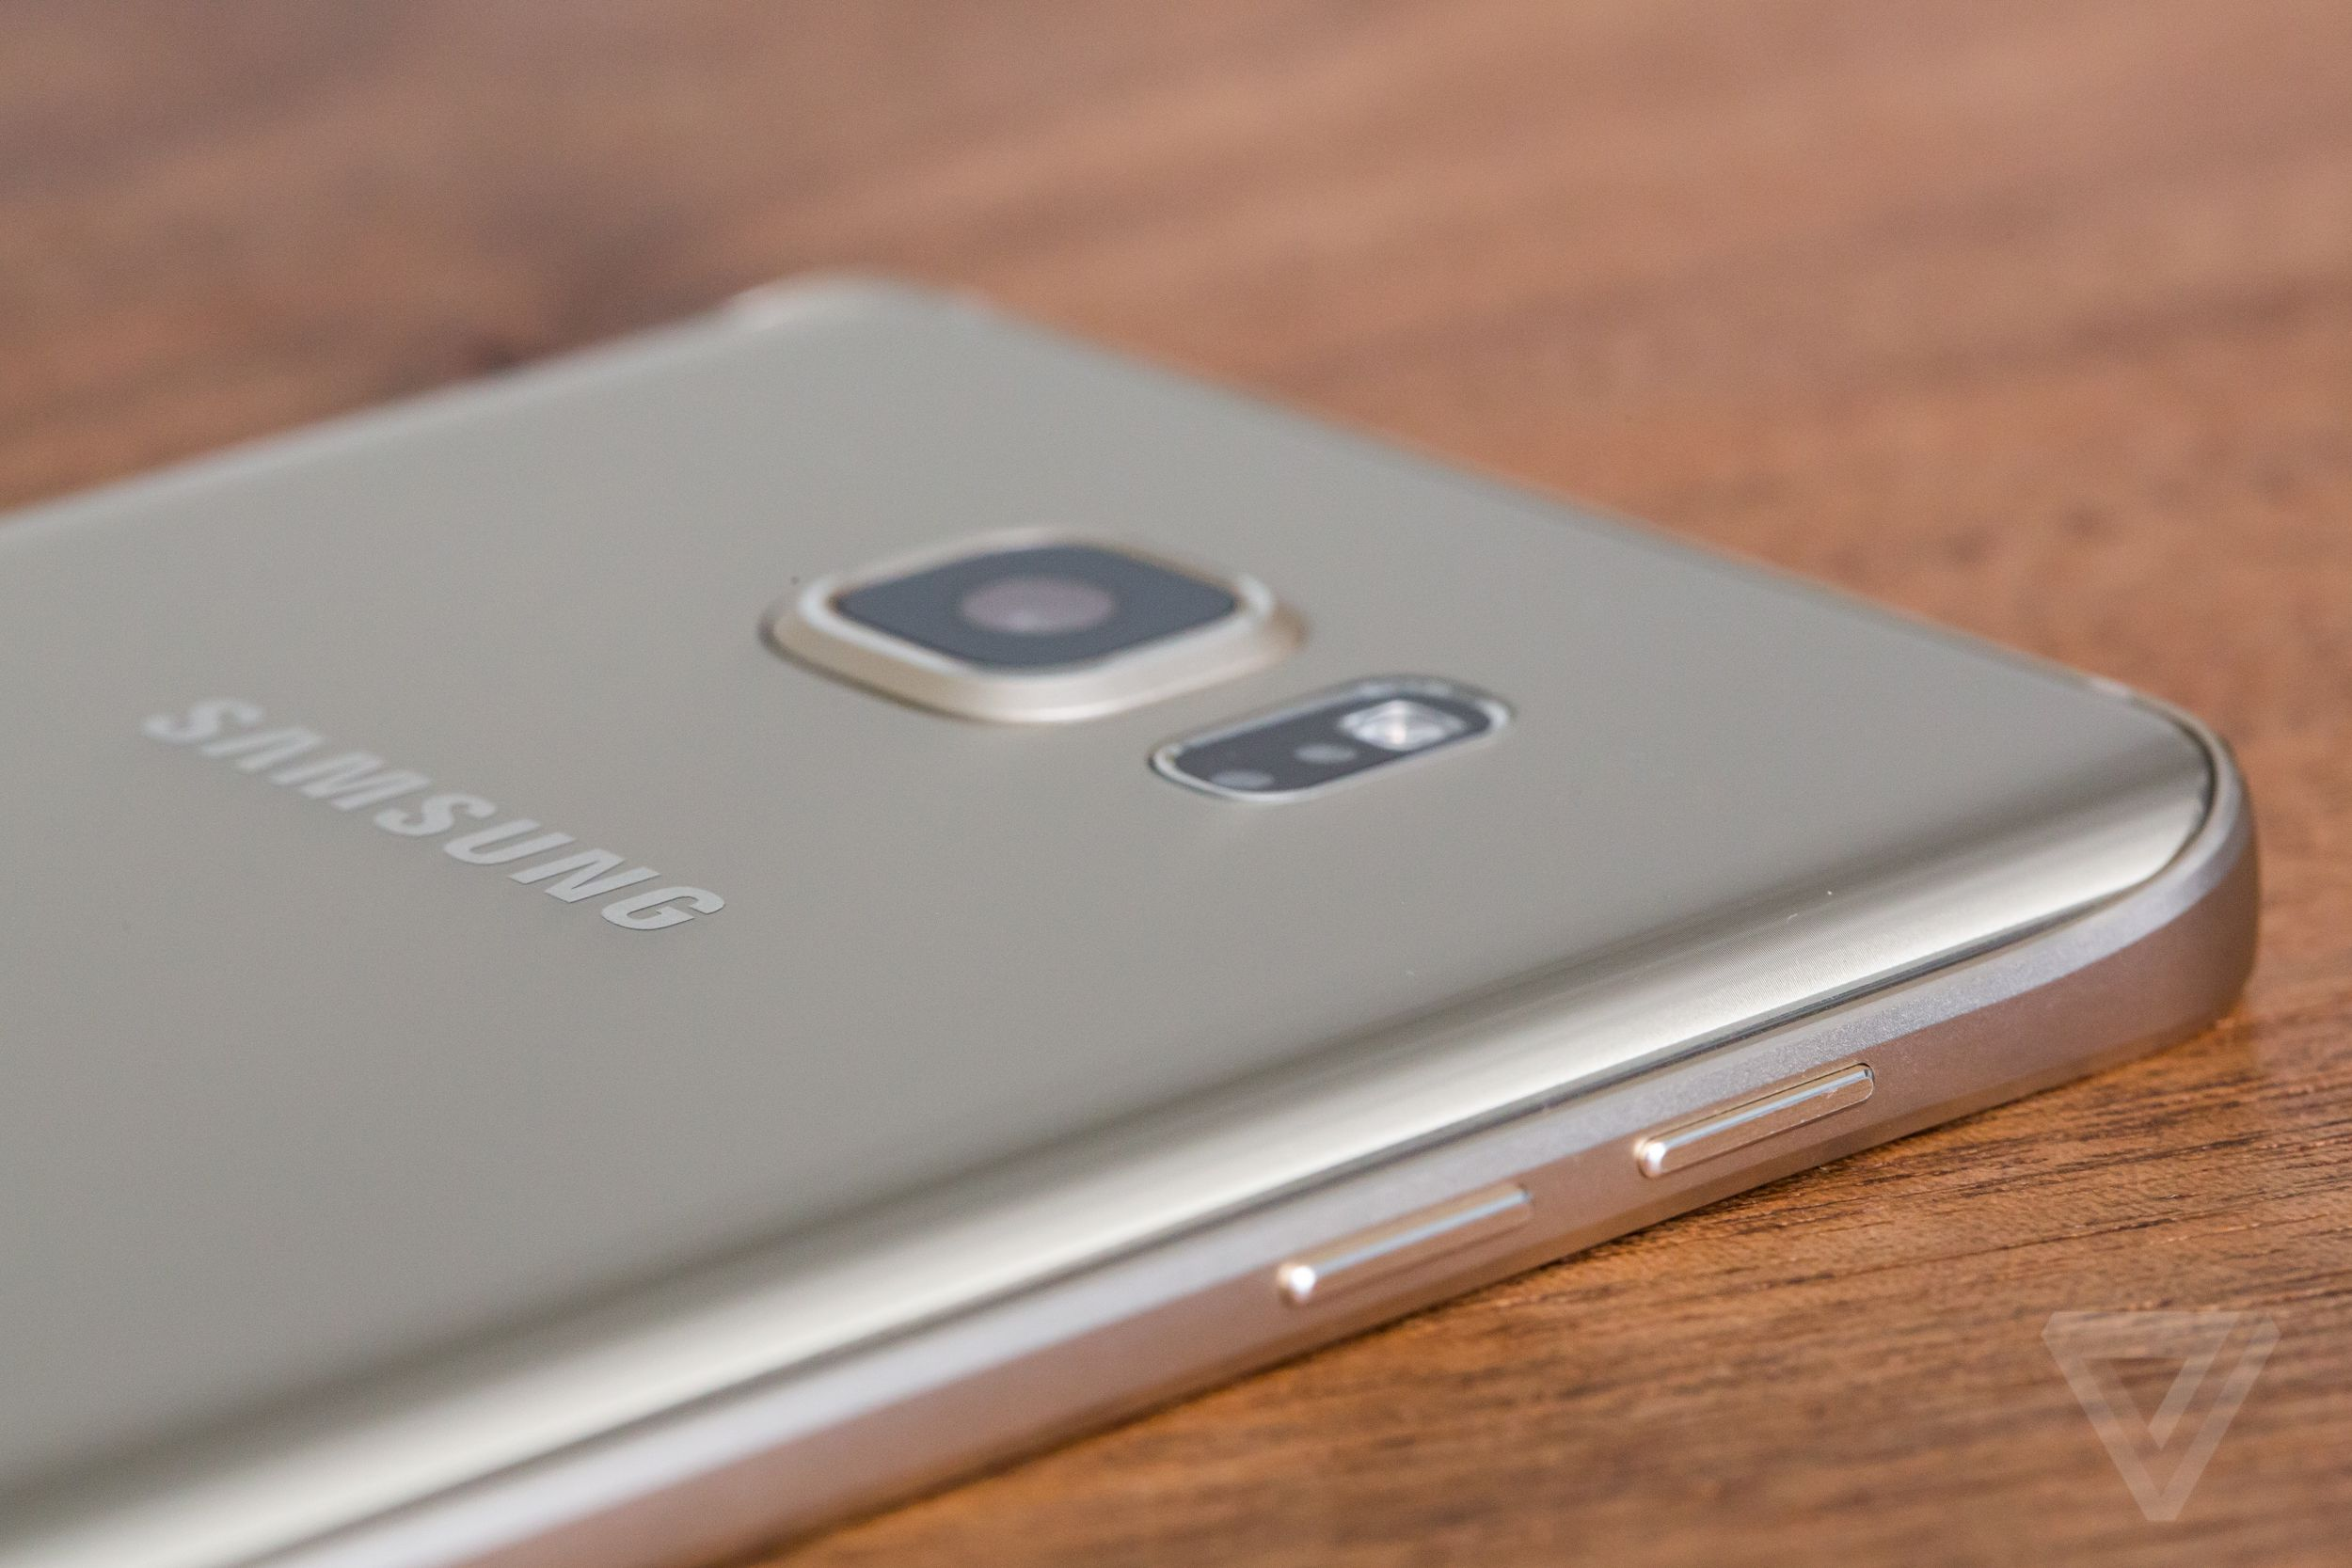 samsung galaxy note 5 review the verge the design is stunning and humane but there are trade offs